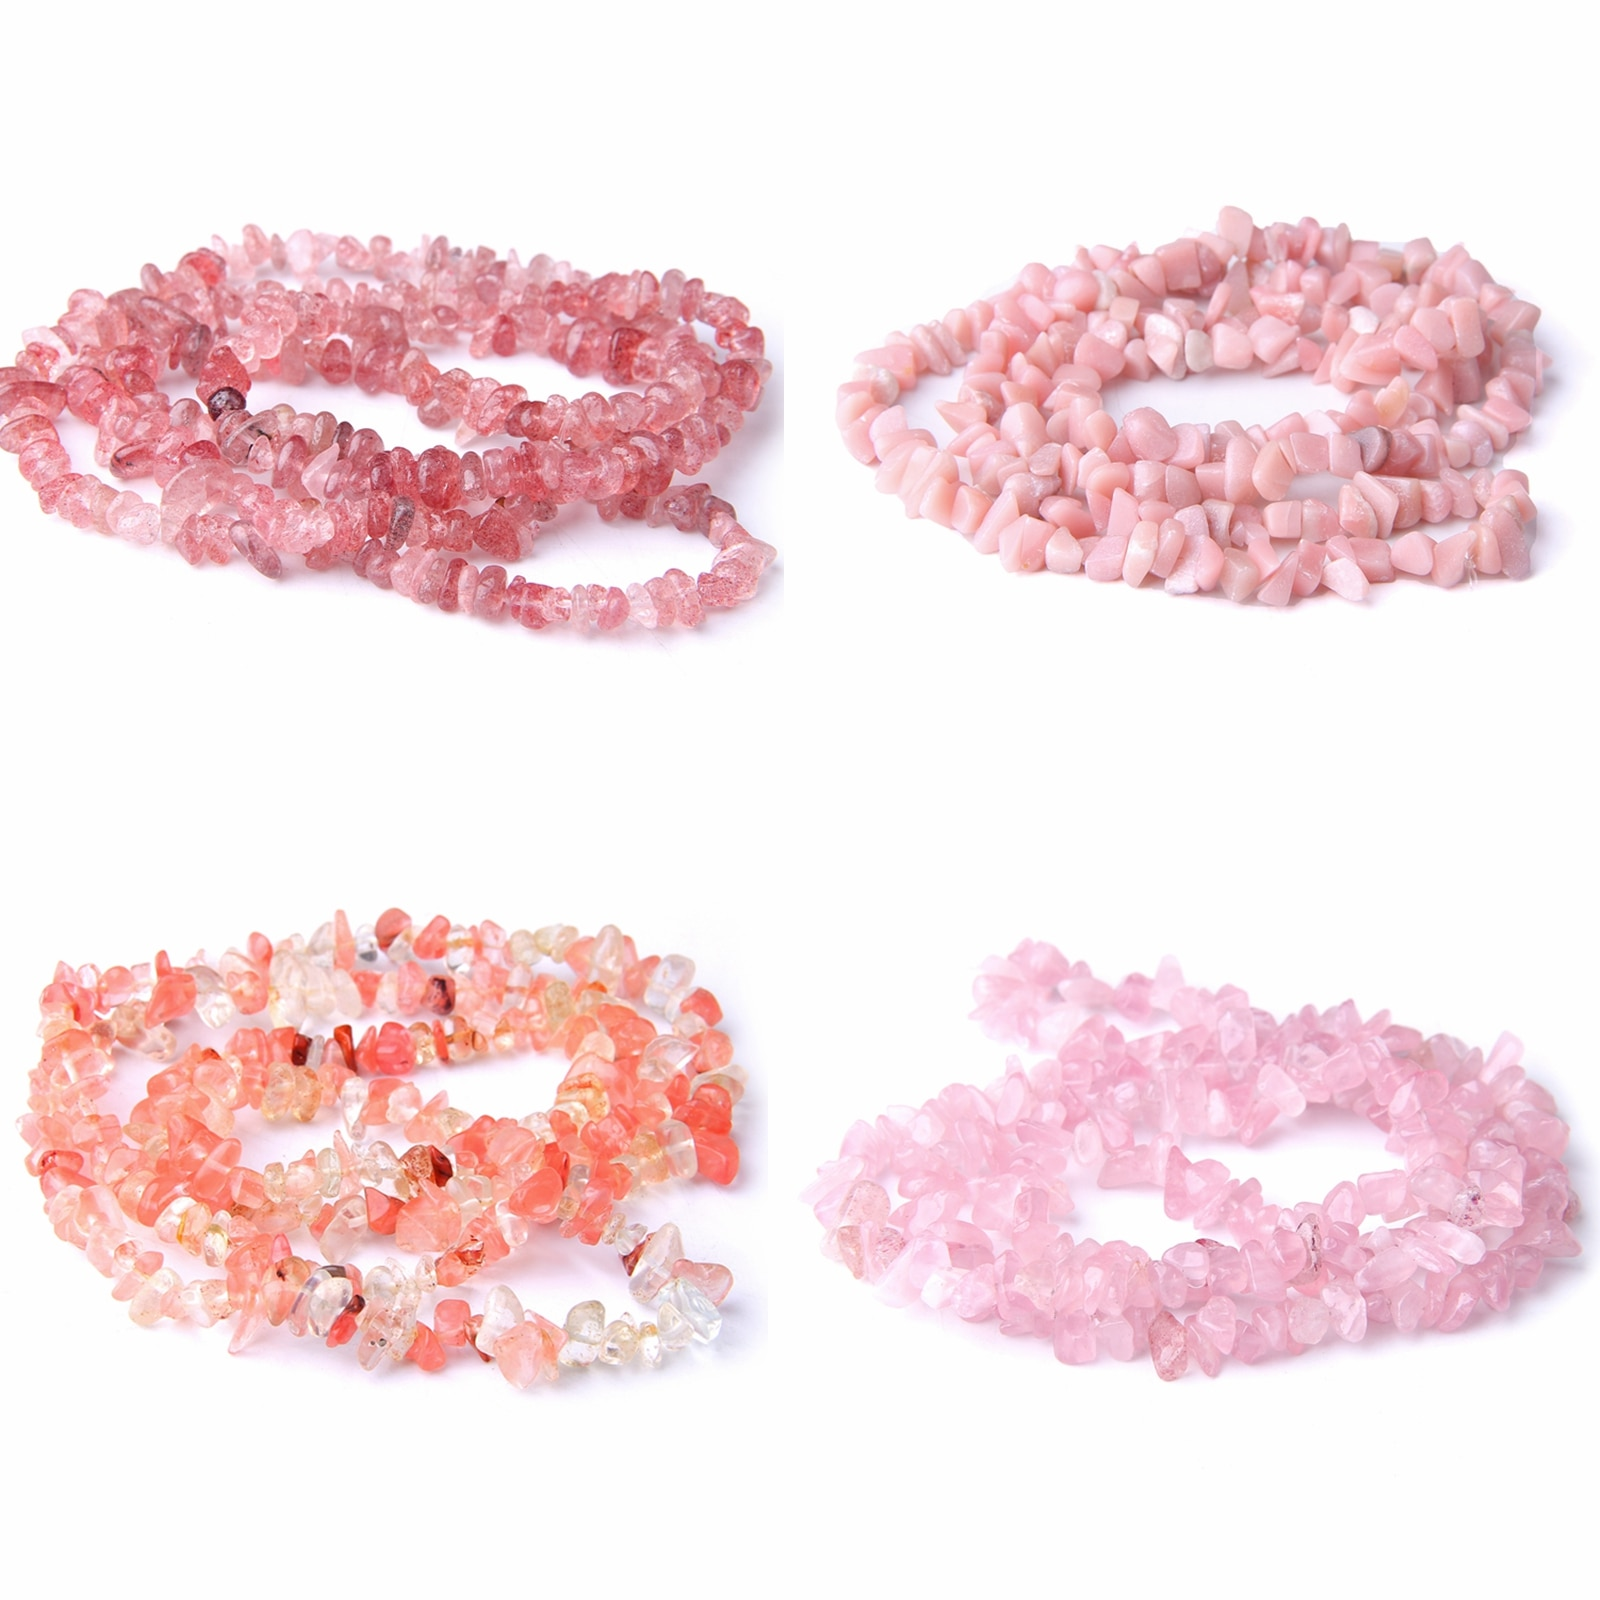 5-8mm Rose Crystal Chips Beads Natural Stone Rhodonite Strawberry Quartz Nuggets For DIY Jewelry Making Appro 16